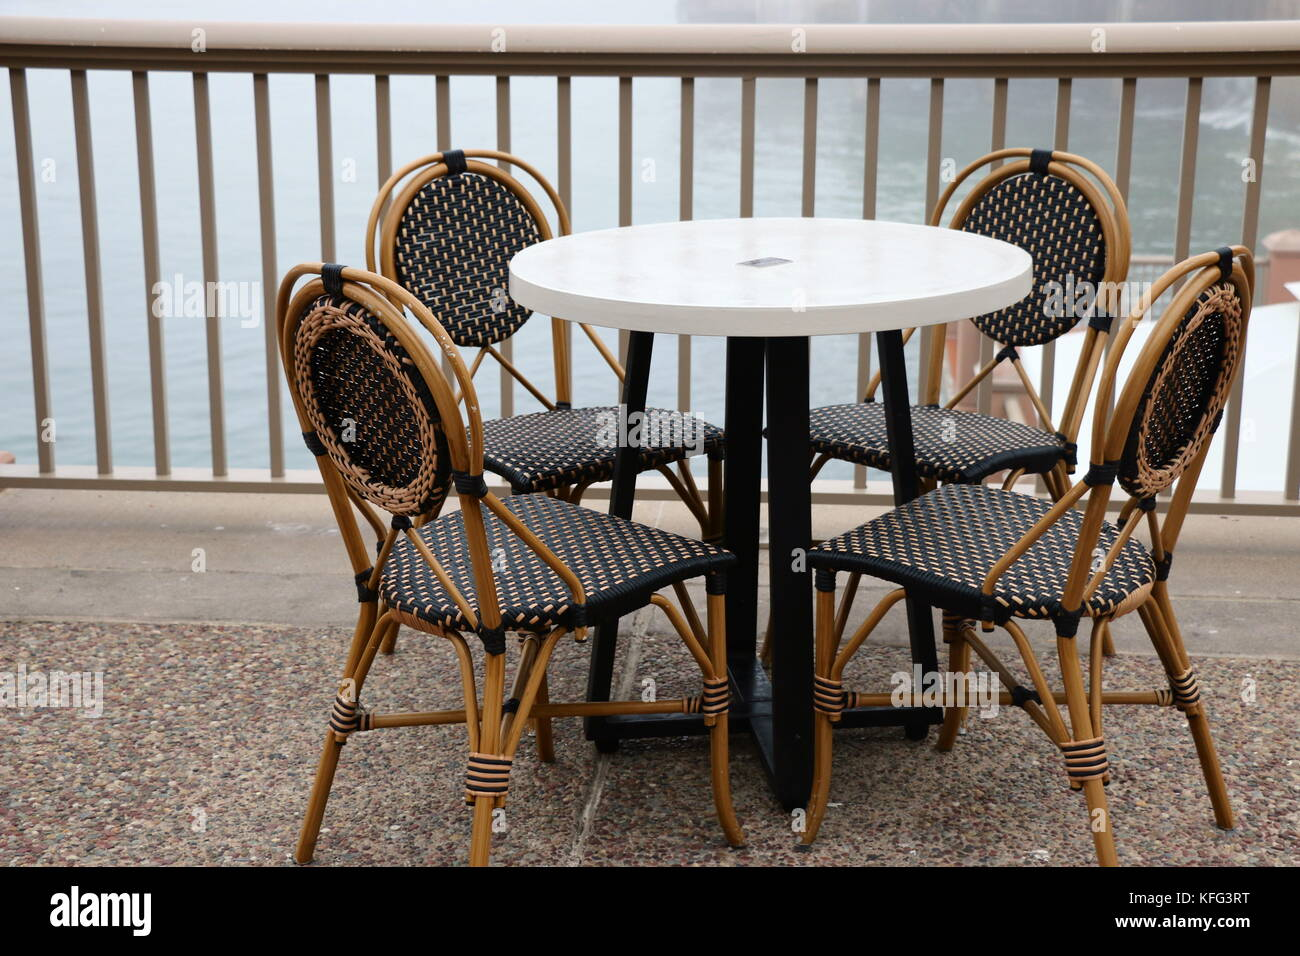 Outdoor French Bistro Chairs Cafe Table And Chairs French Bistro Style Stock Photo 164467404